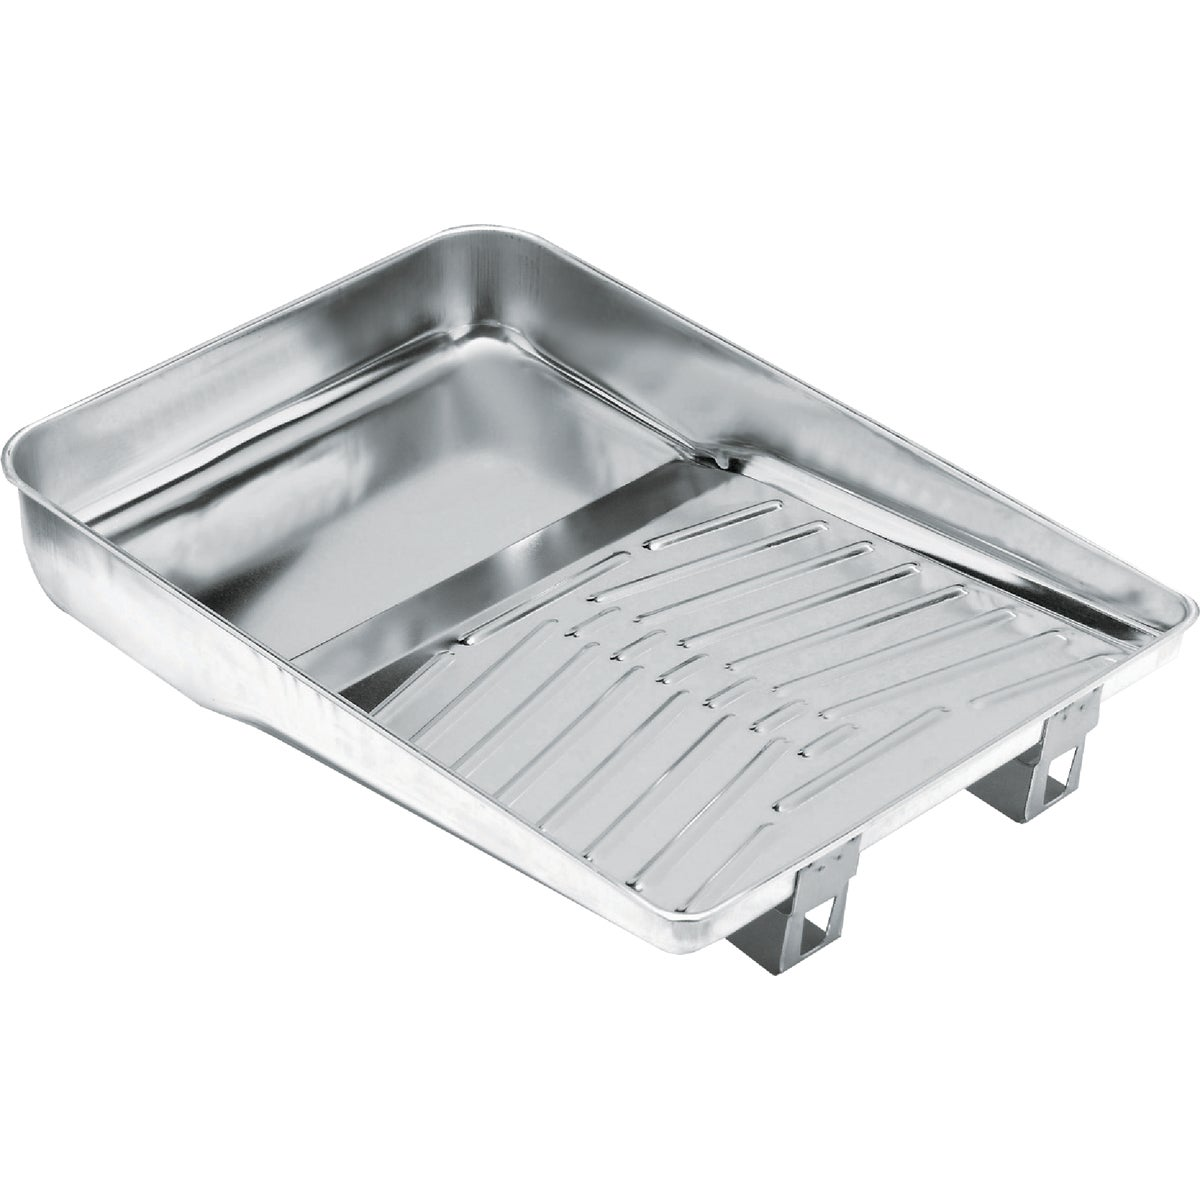 """11"""" DELUXE METAL TRAY - R402-11 by Wooster Brush Co"""